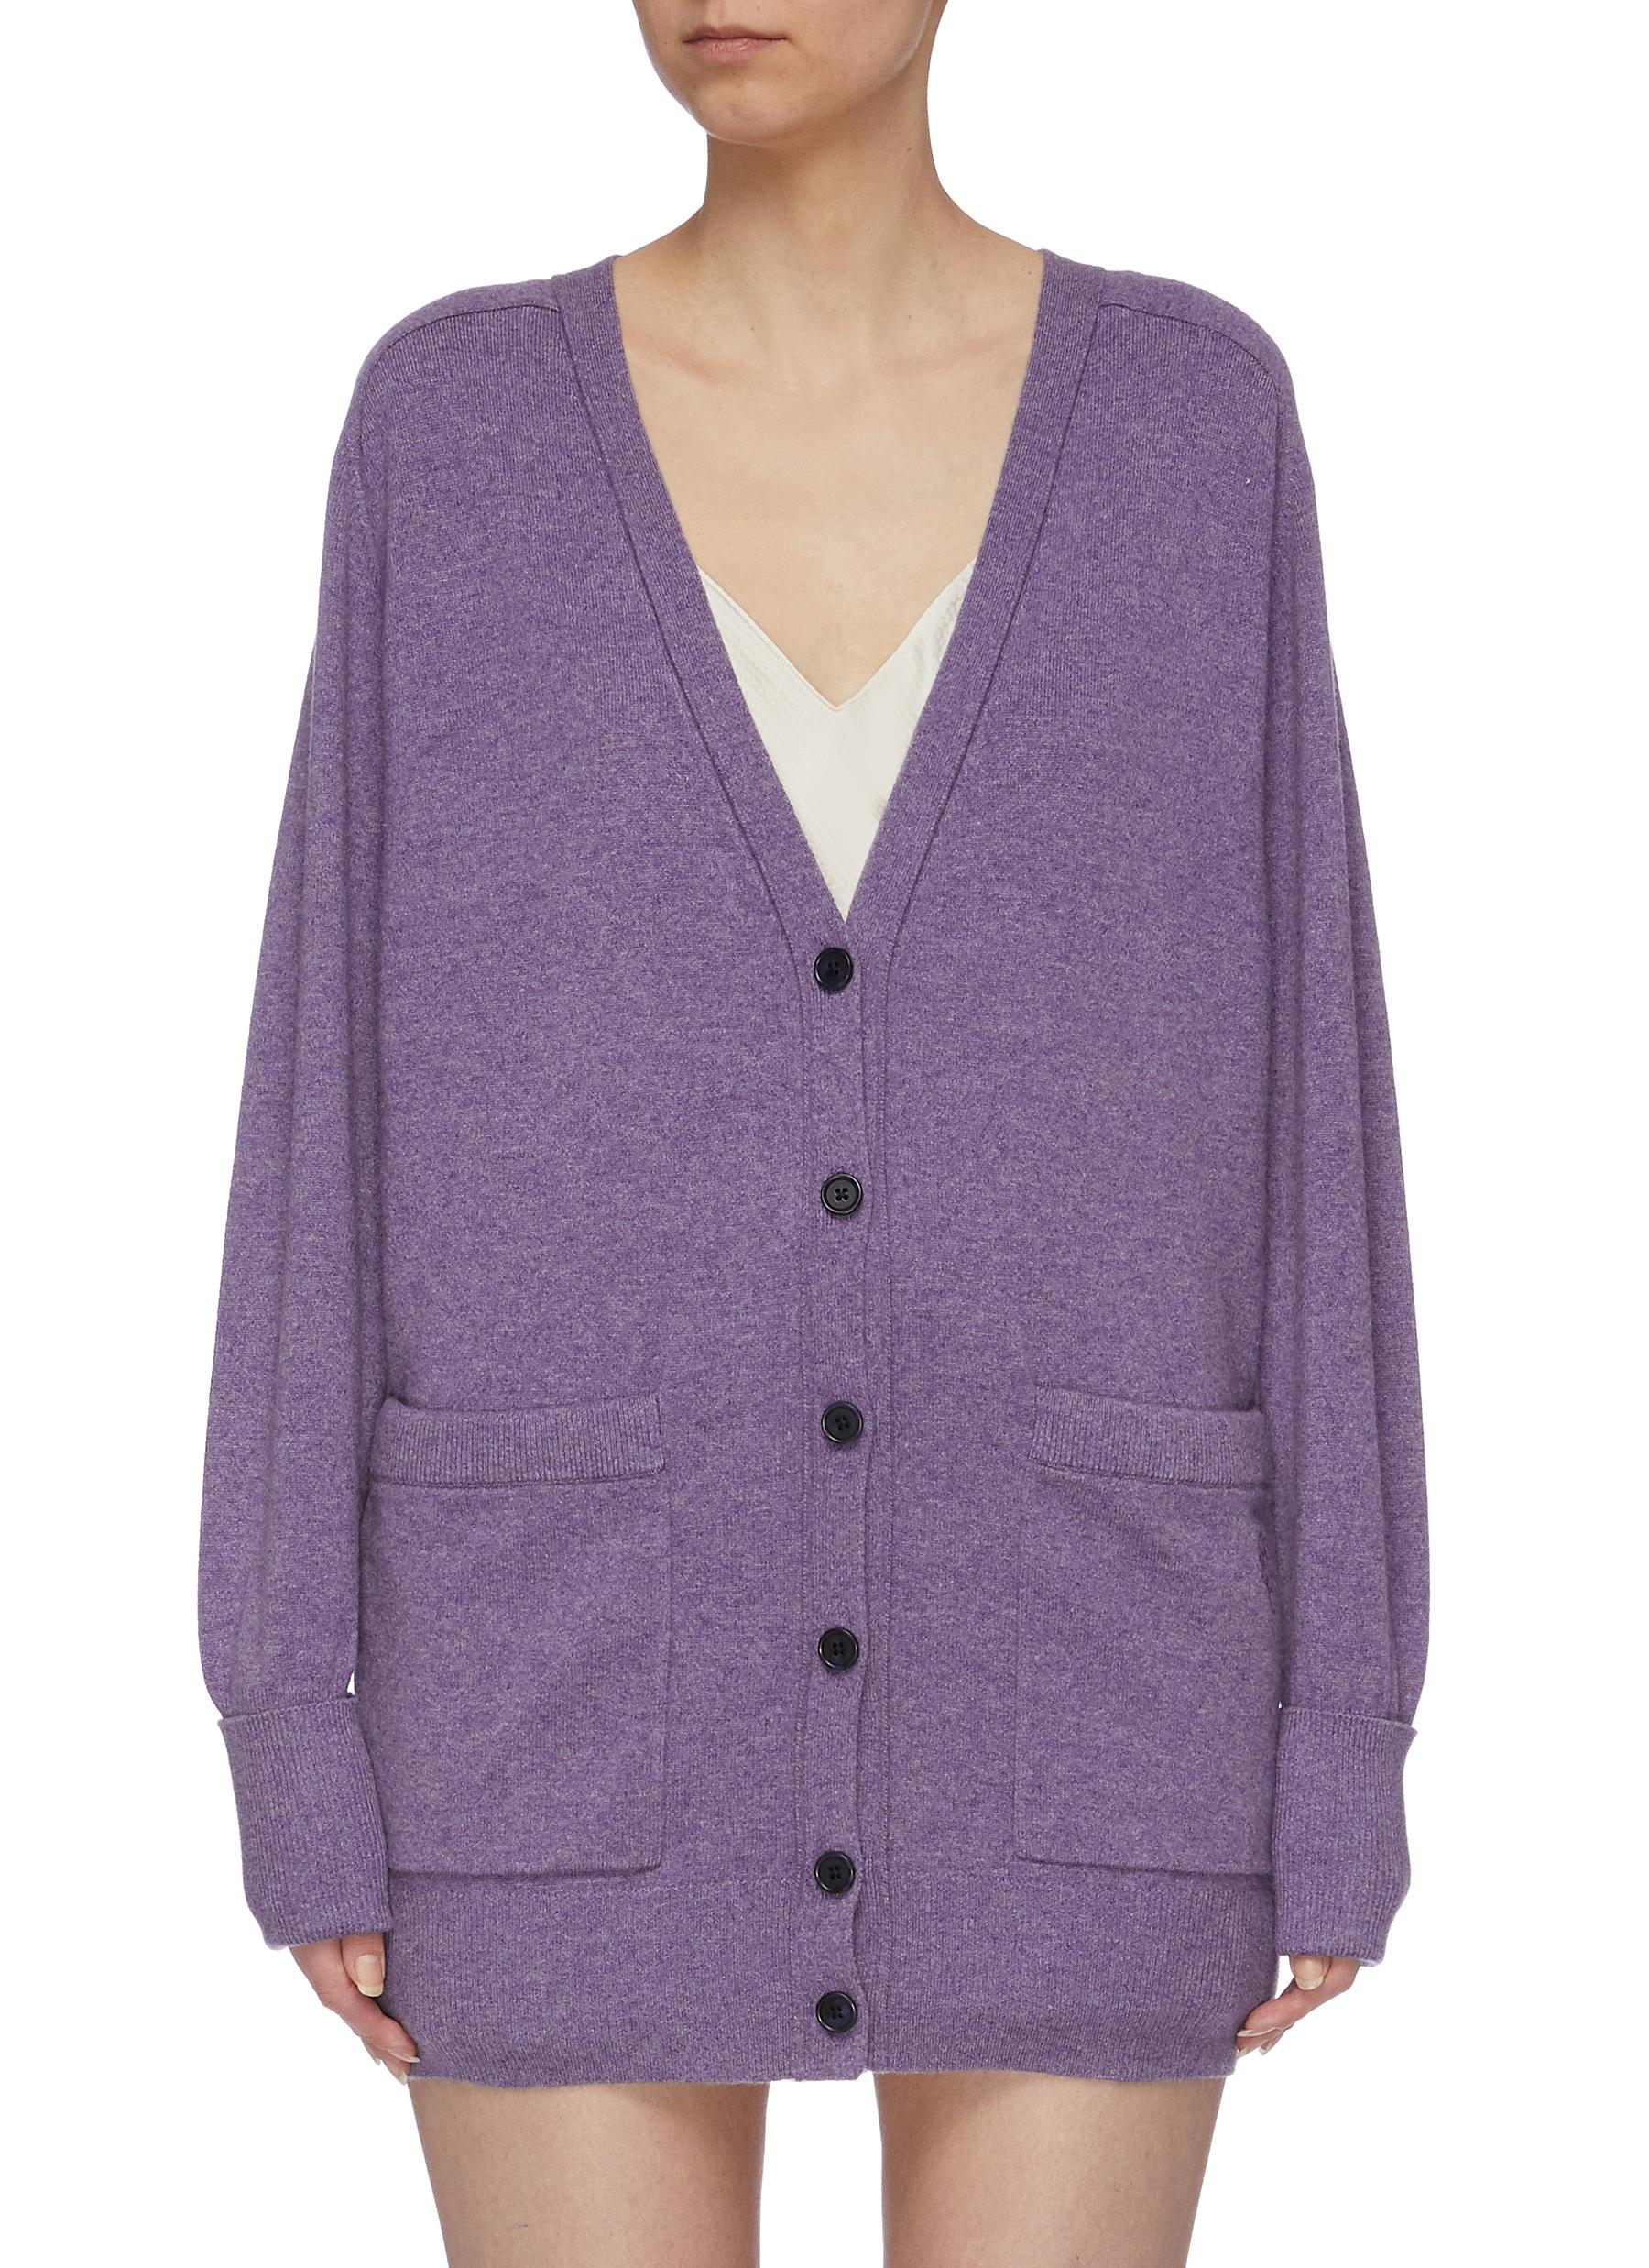 Patch pocket cashmere blend cardigan by Chloé